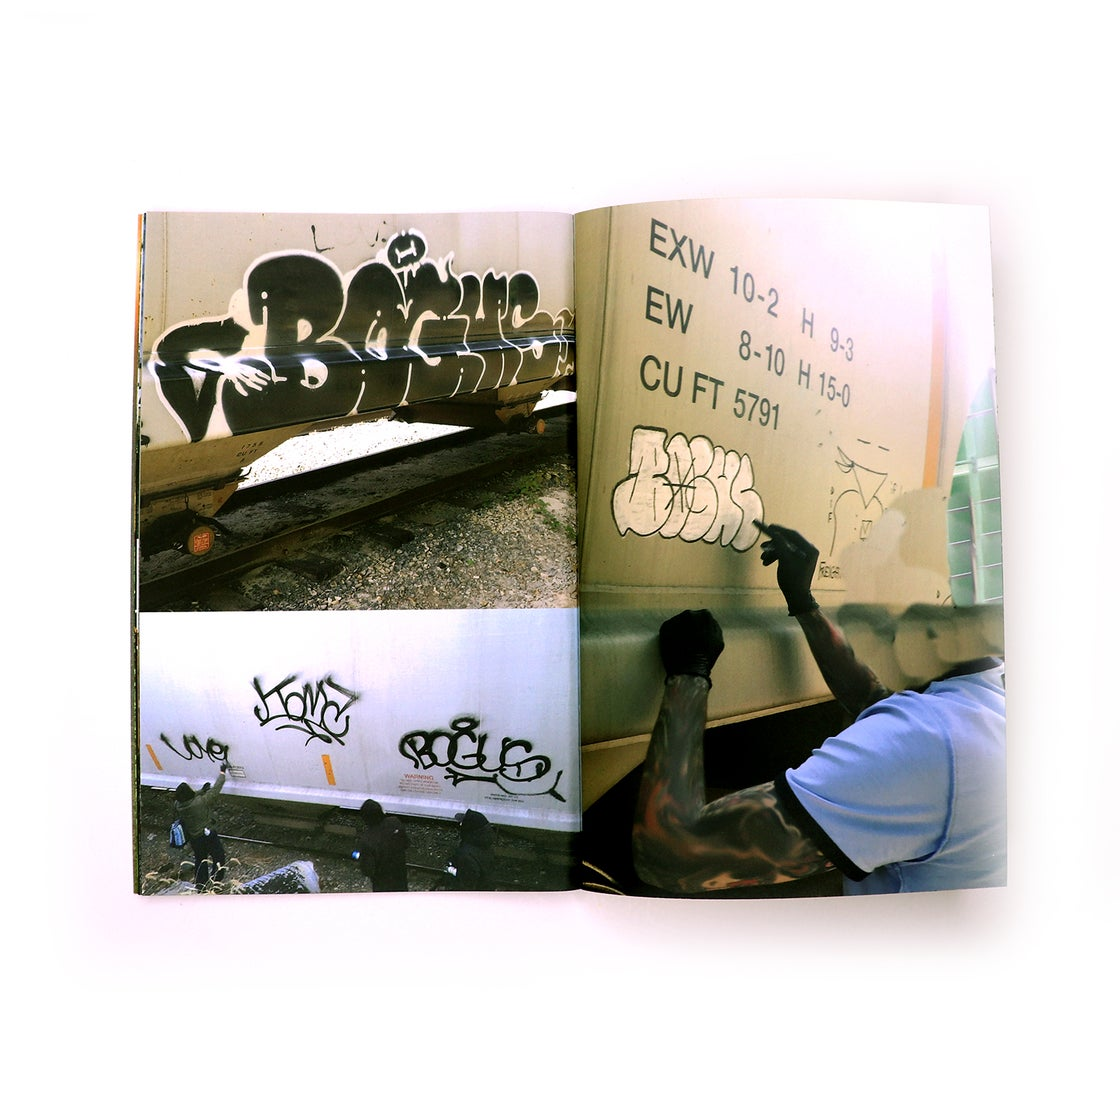 Image of FREE BOGUS - VOYER & BOGUS CDC x CUT IN THE FENCE